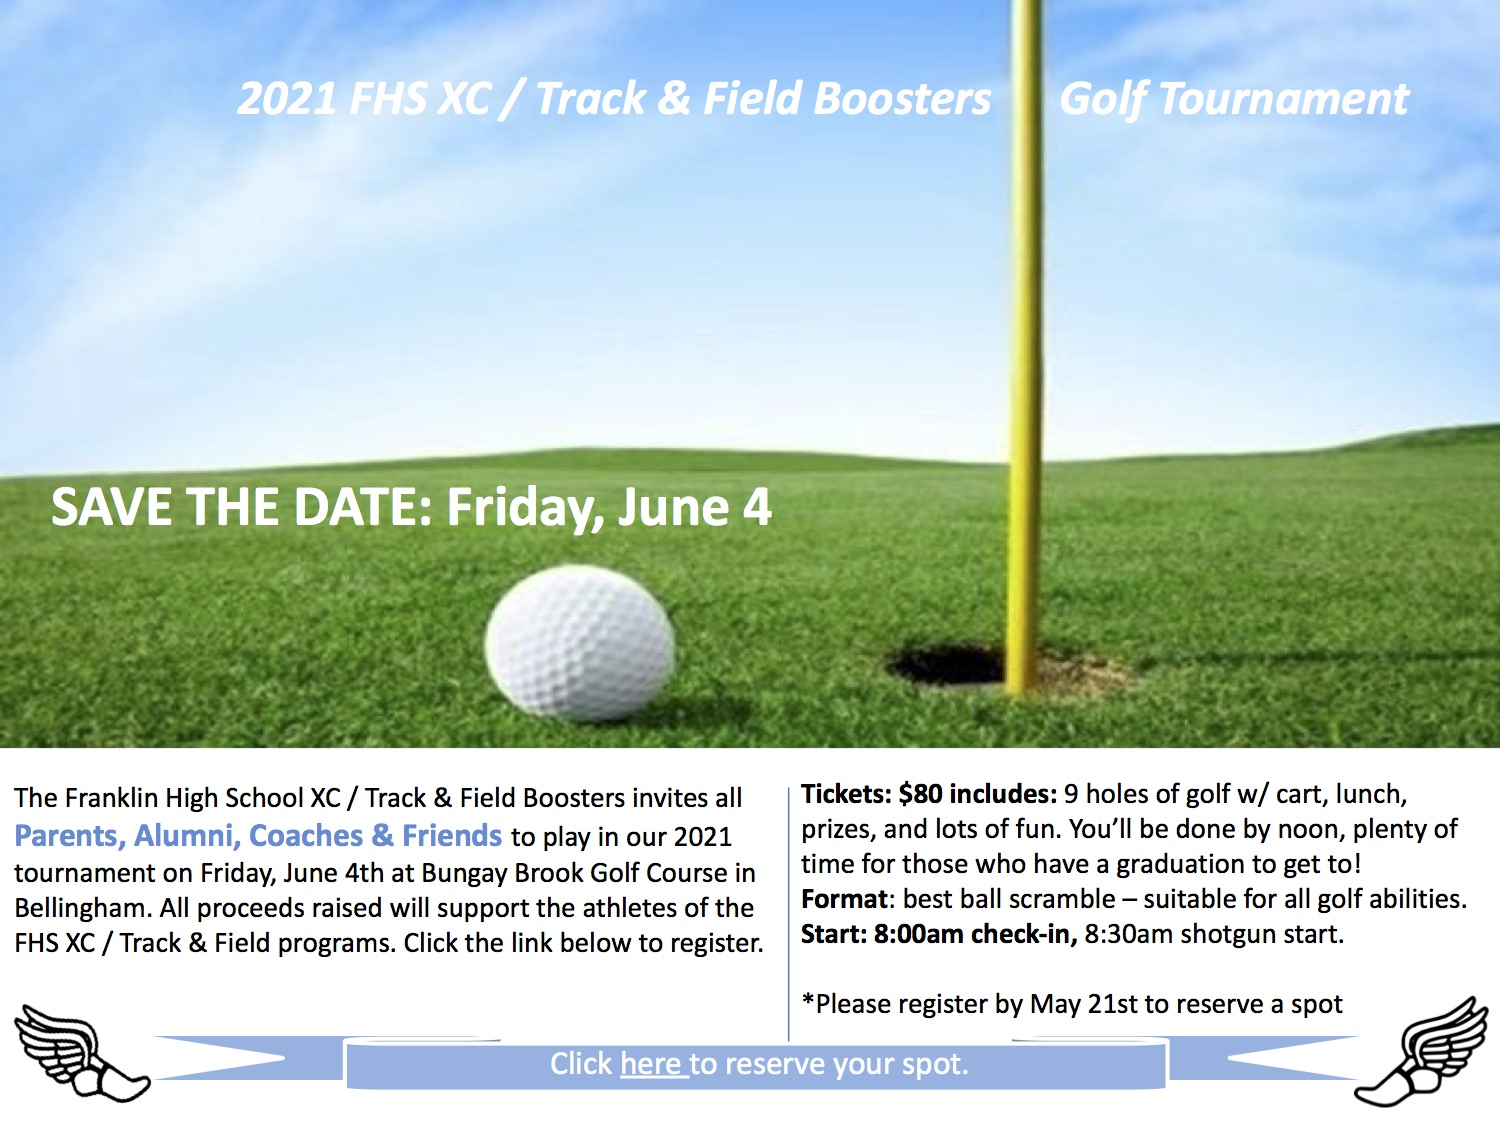 2021 FHS XC - Track & Field Boosters Golf Tournament - Jun 4 - Sign up now!